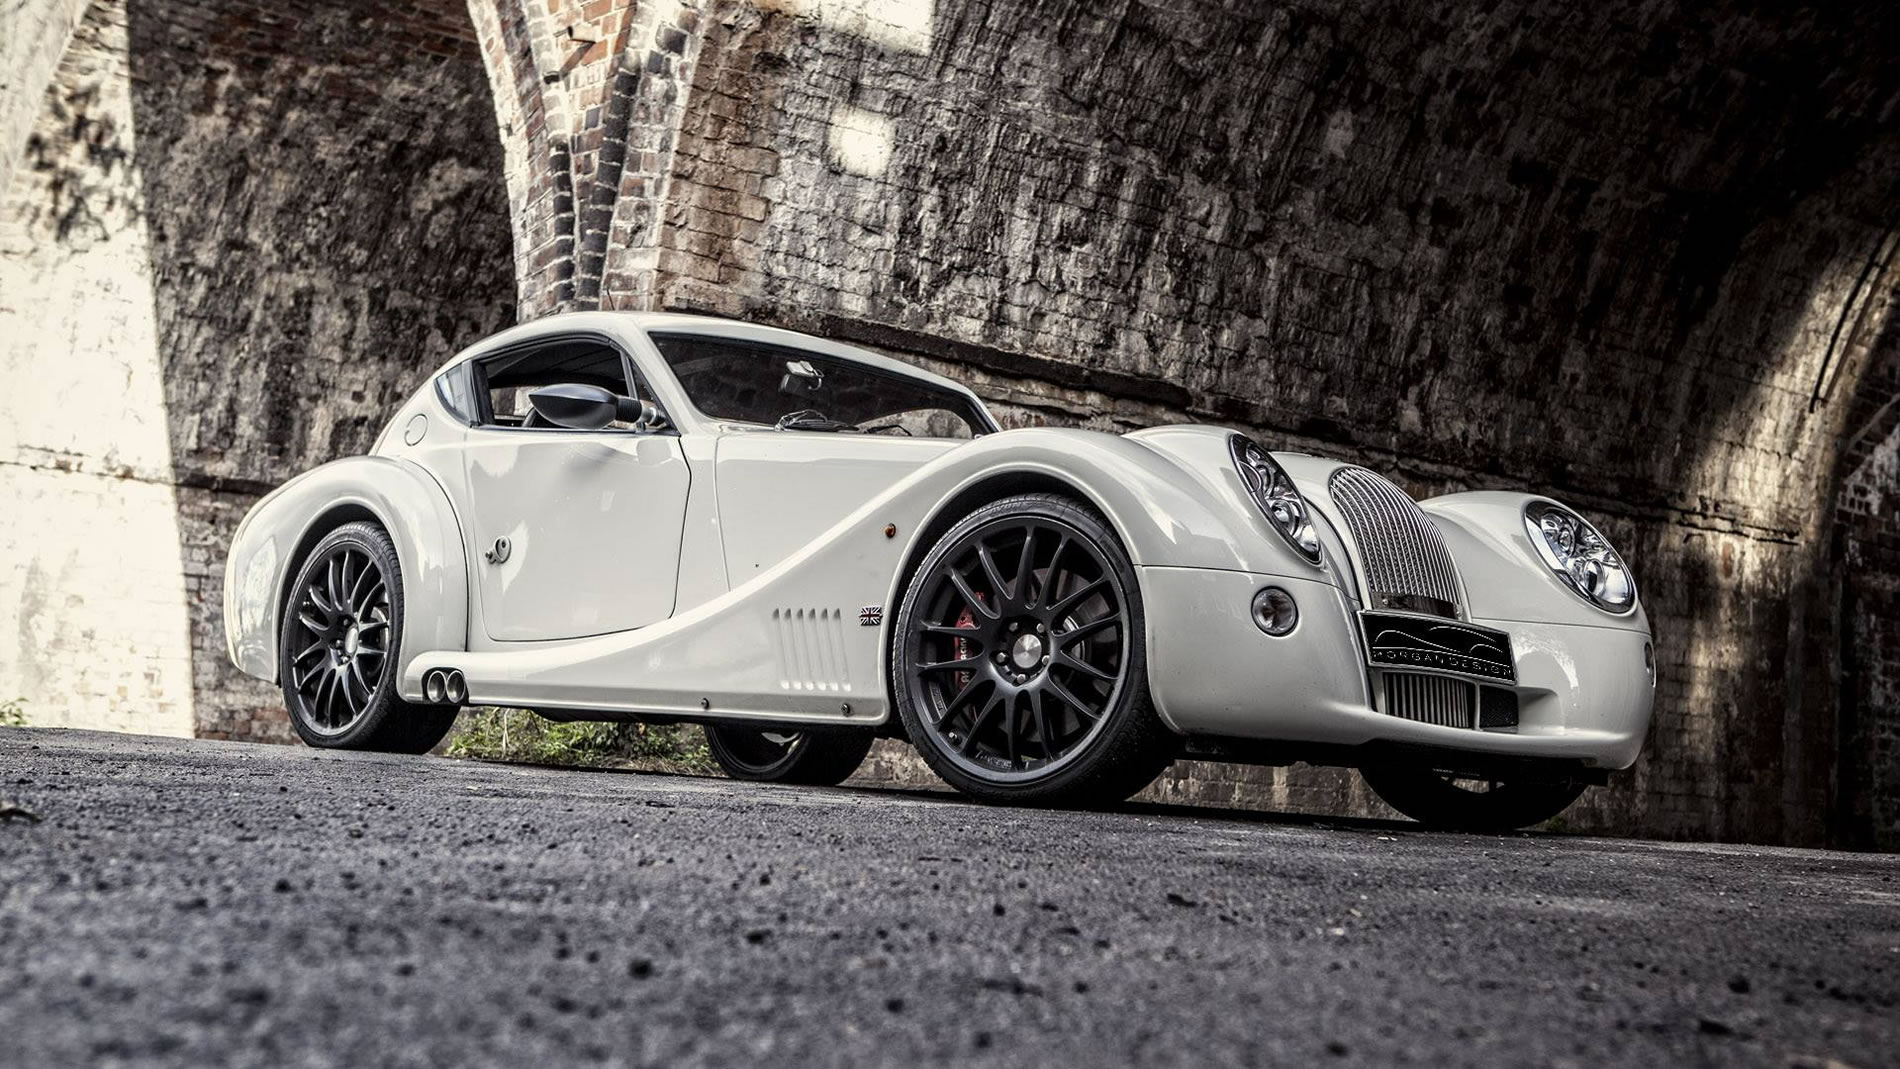 2014 morgan aero coupe front photo wallpaper size 1900 x 1069 nr 4 13. Black Bedroom Furniture Sets. Home Design Ideas